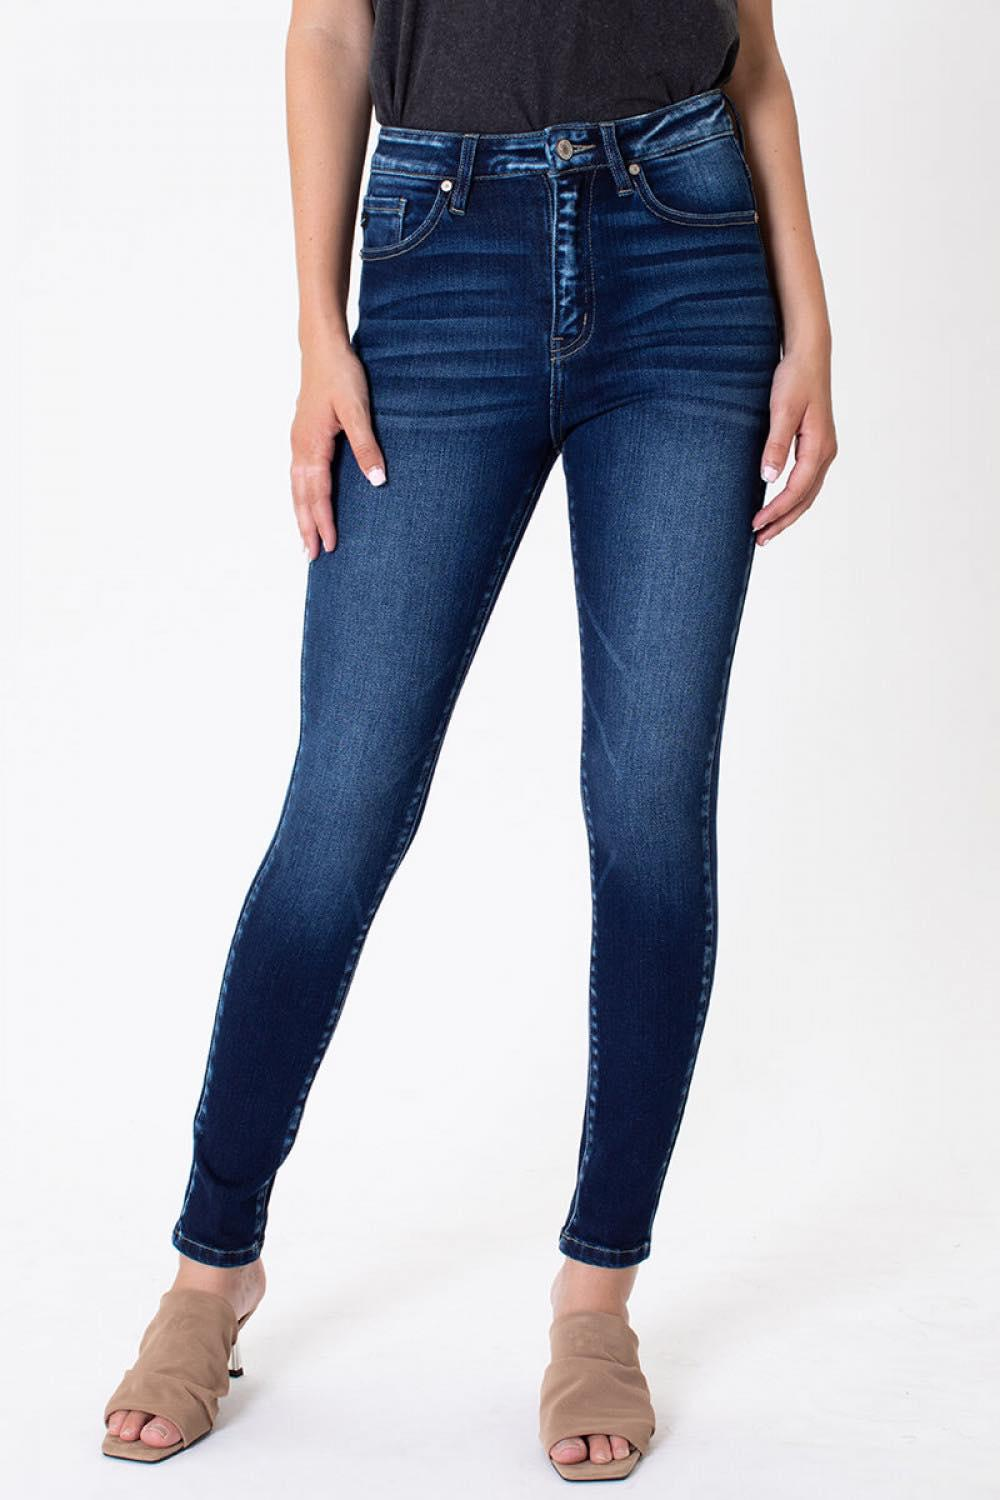 KanCan Casual Friday High Rise Skinny - My Sister's Porch